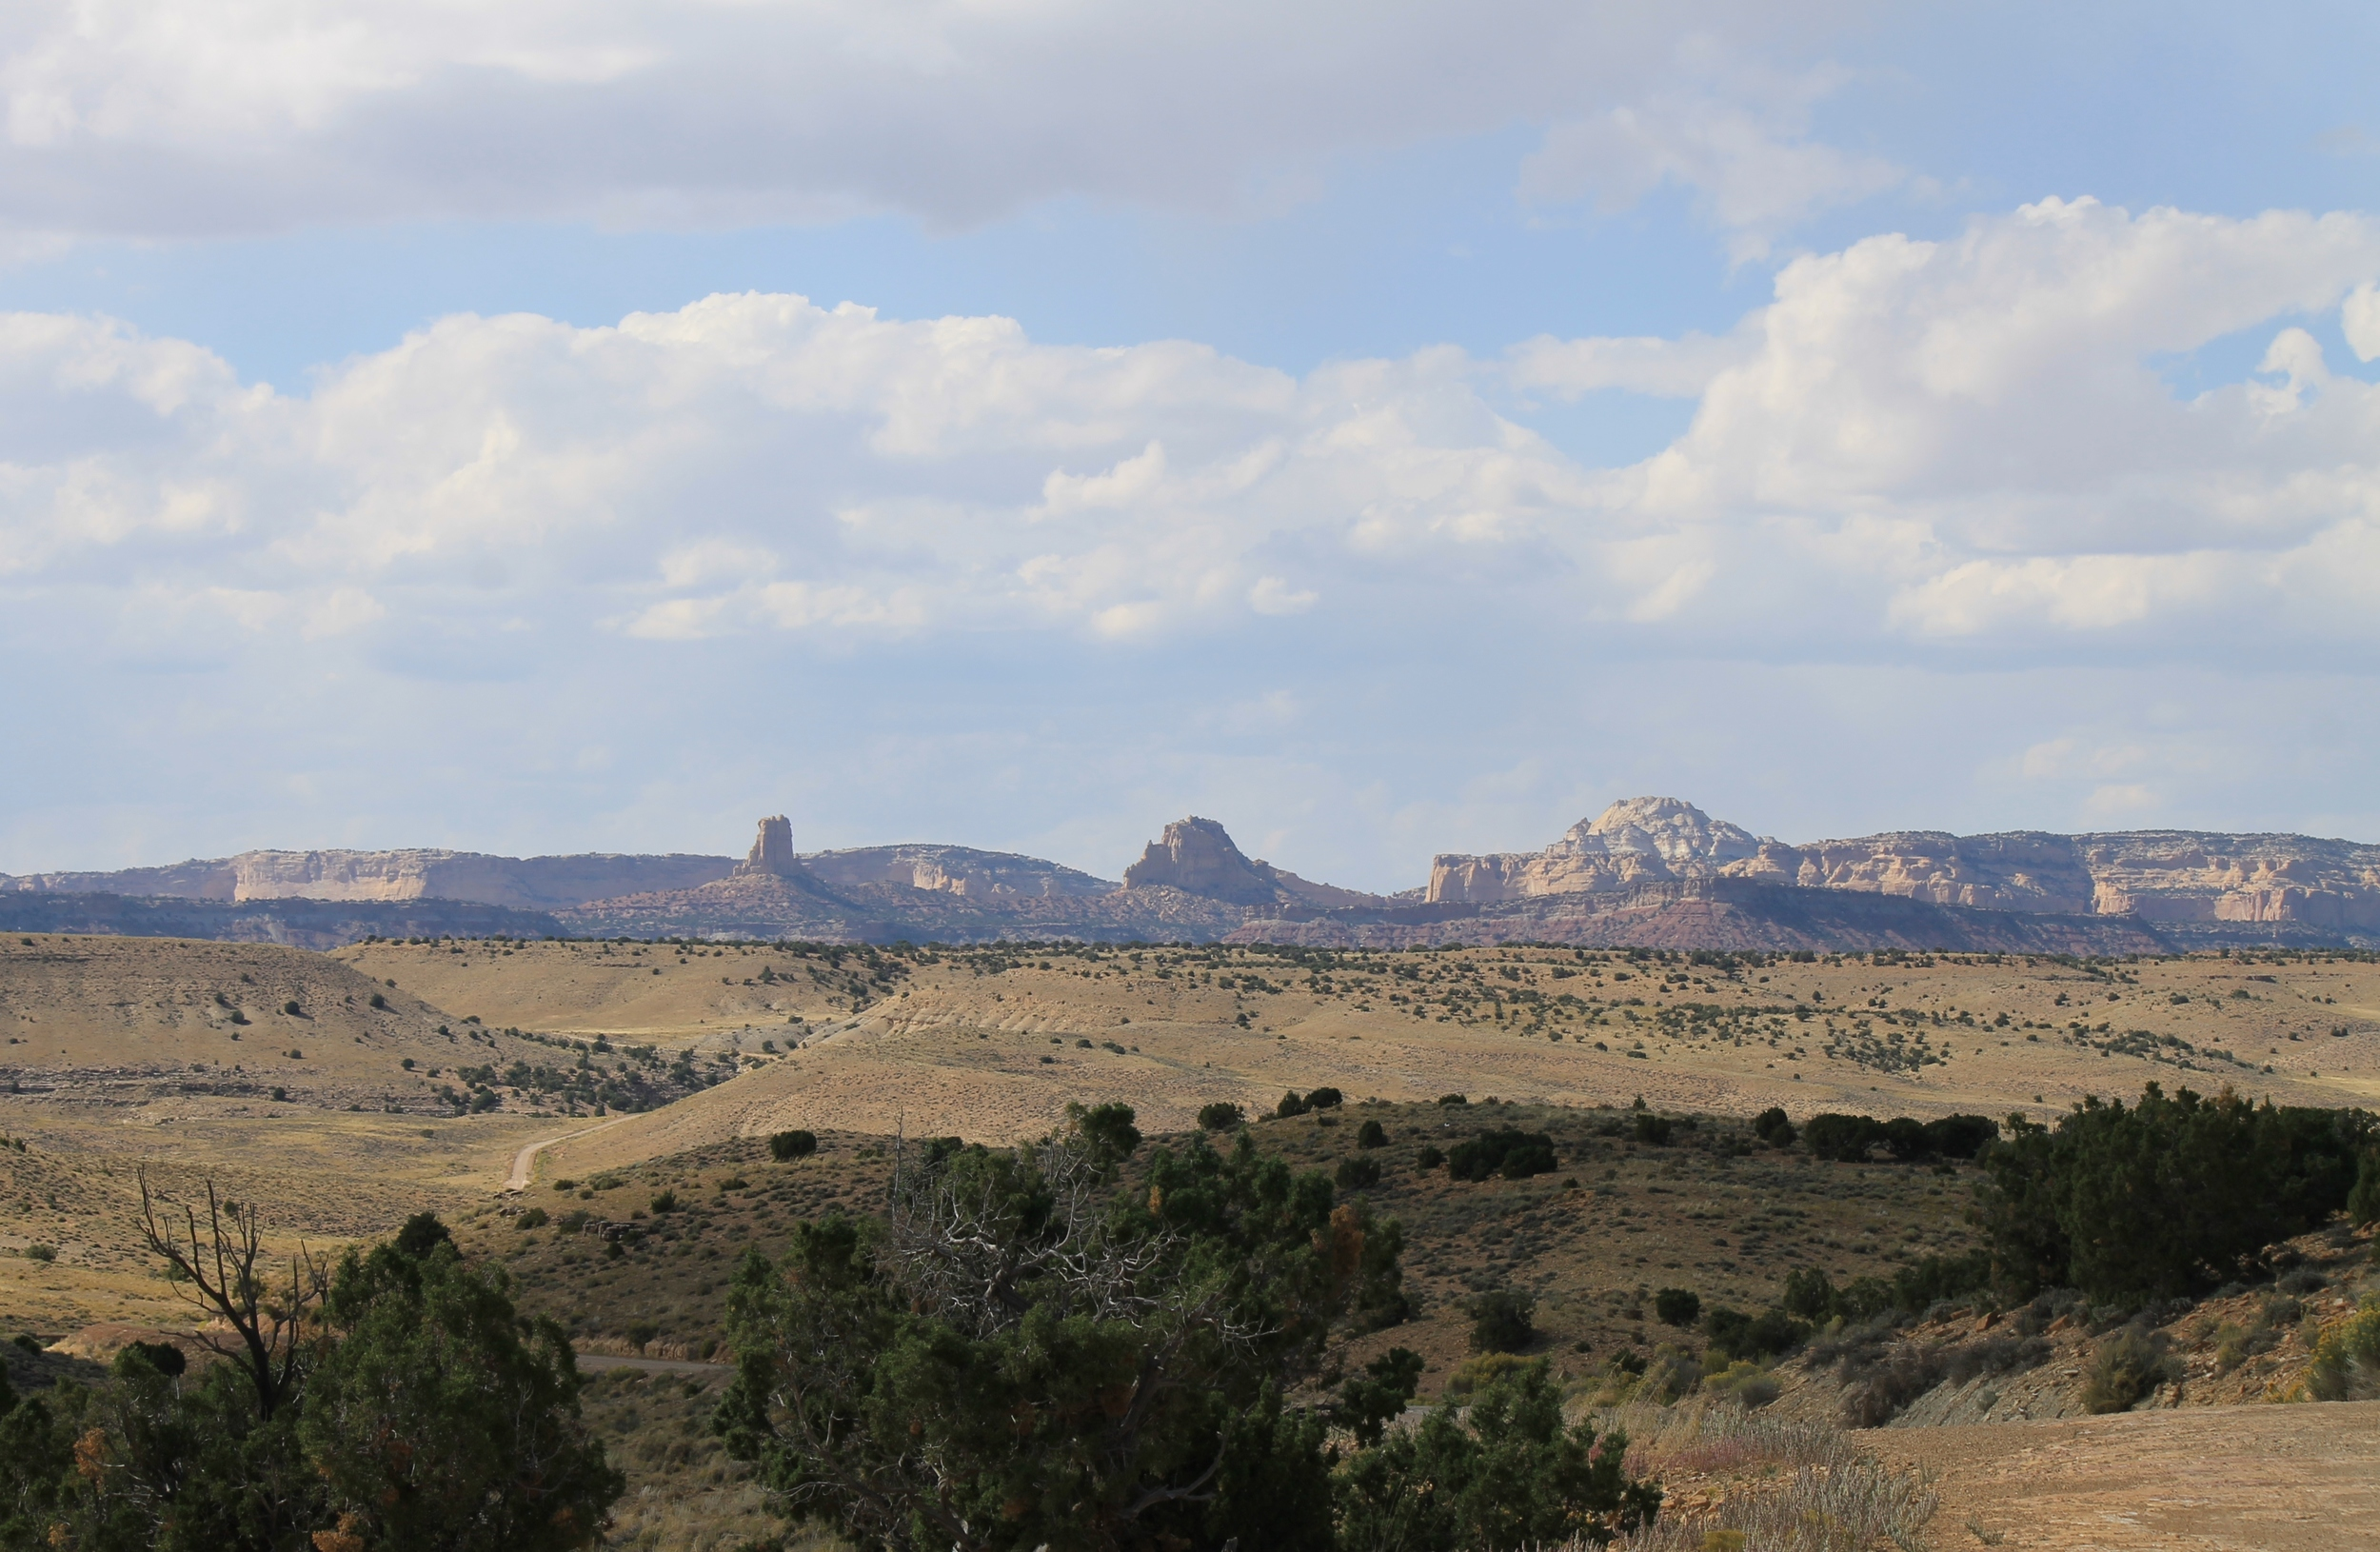 The westward view from the southern stretch of Temple Mountain Road.